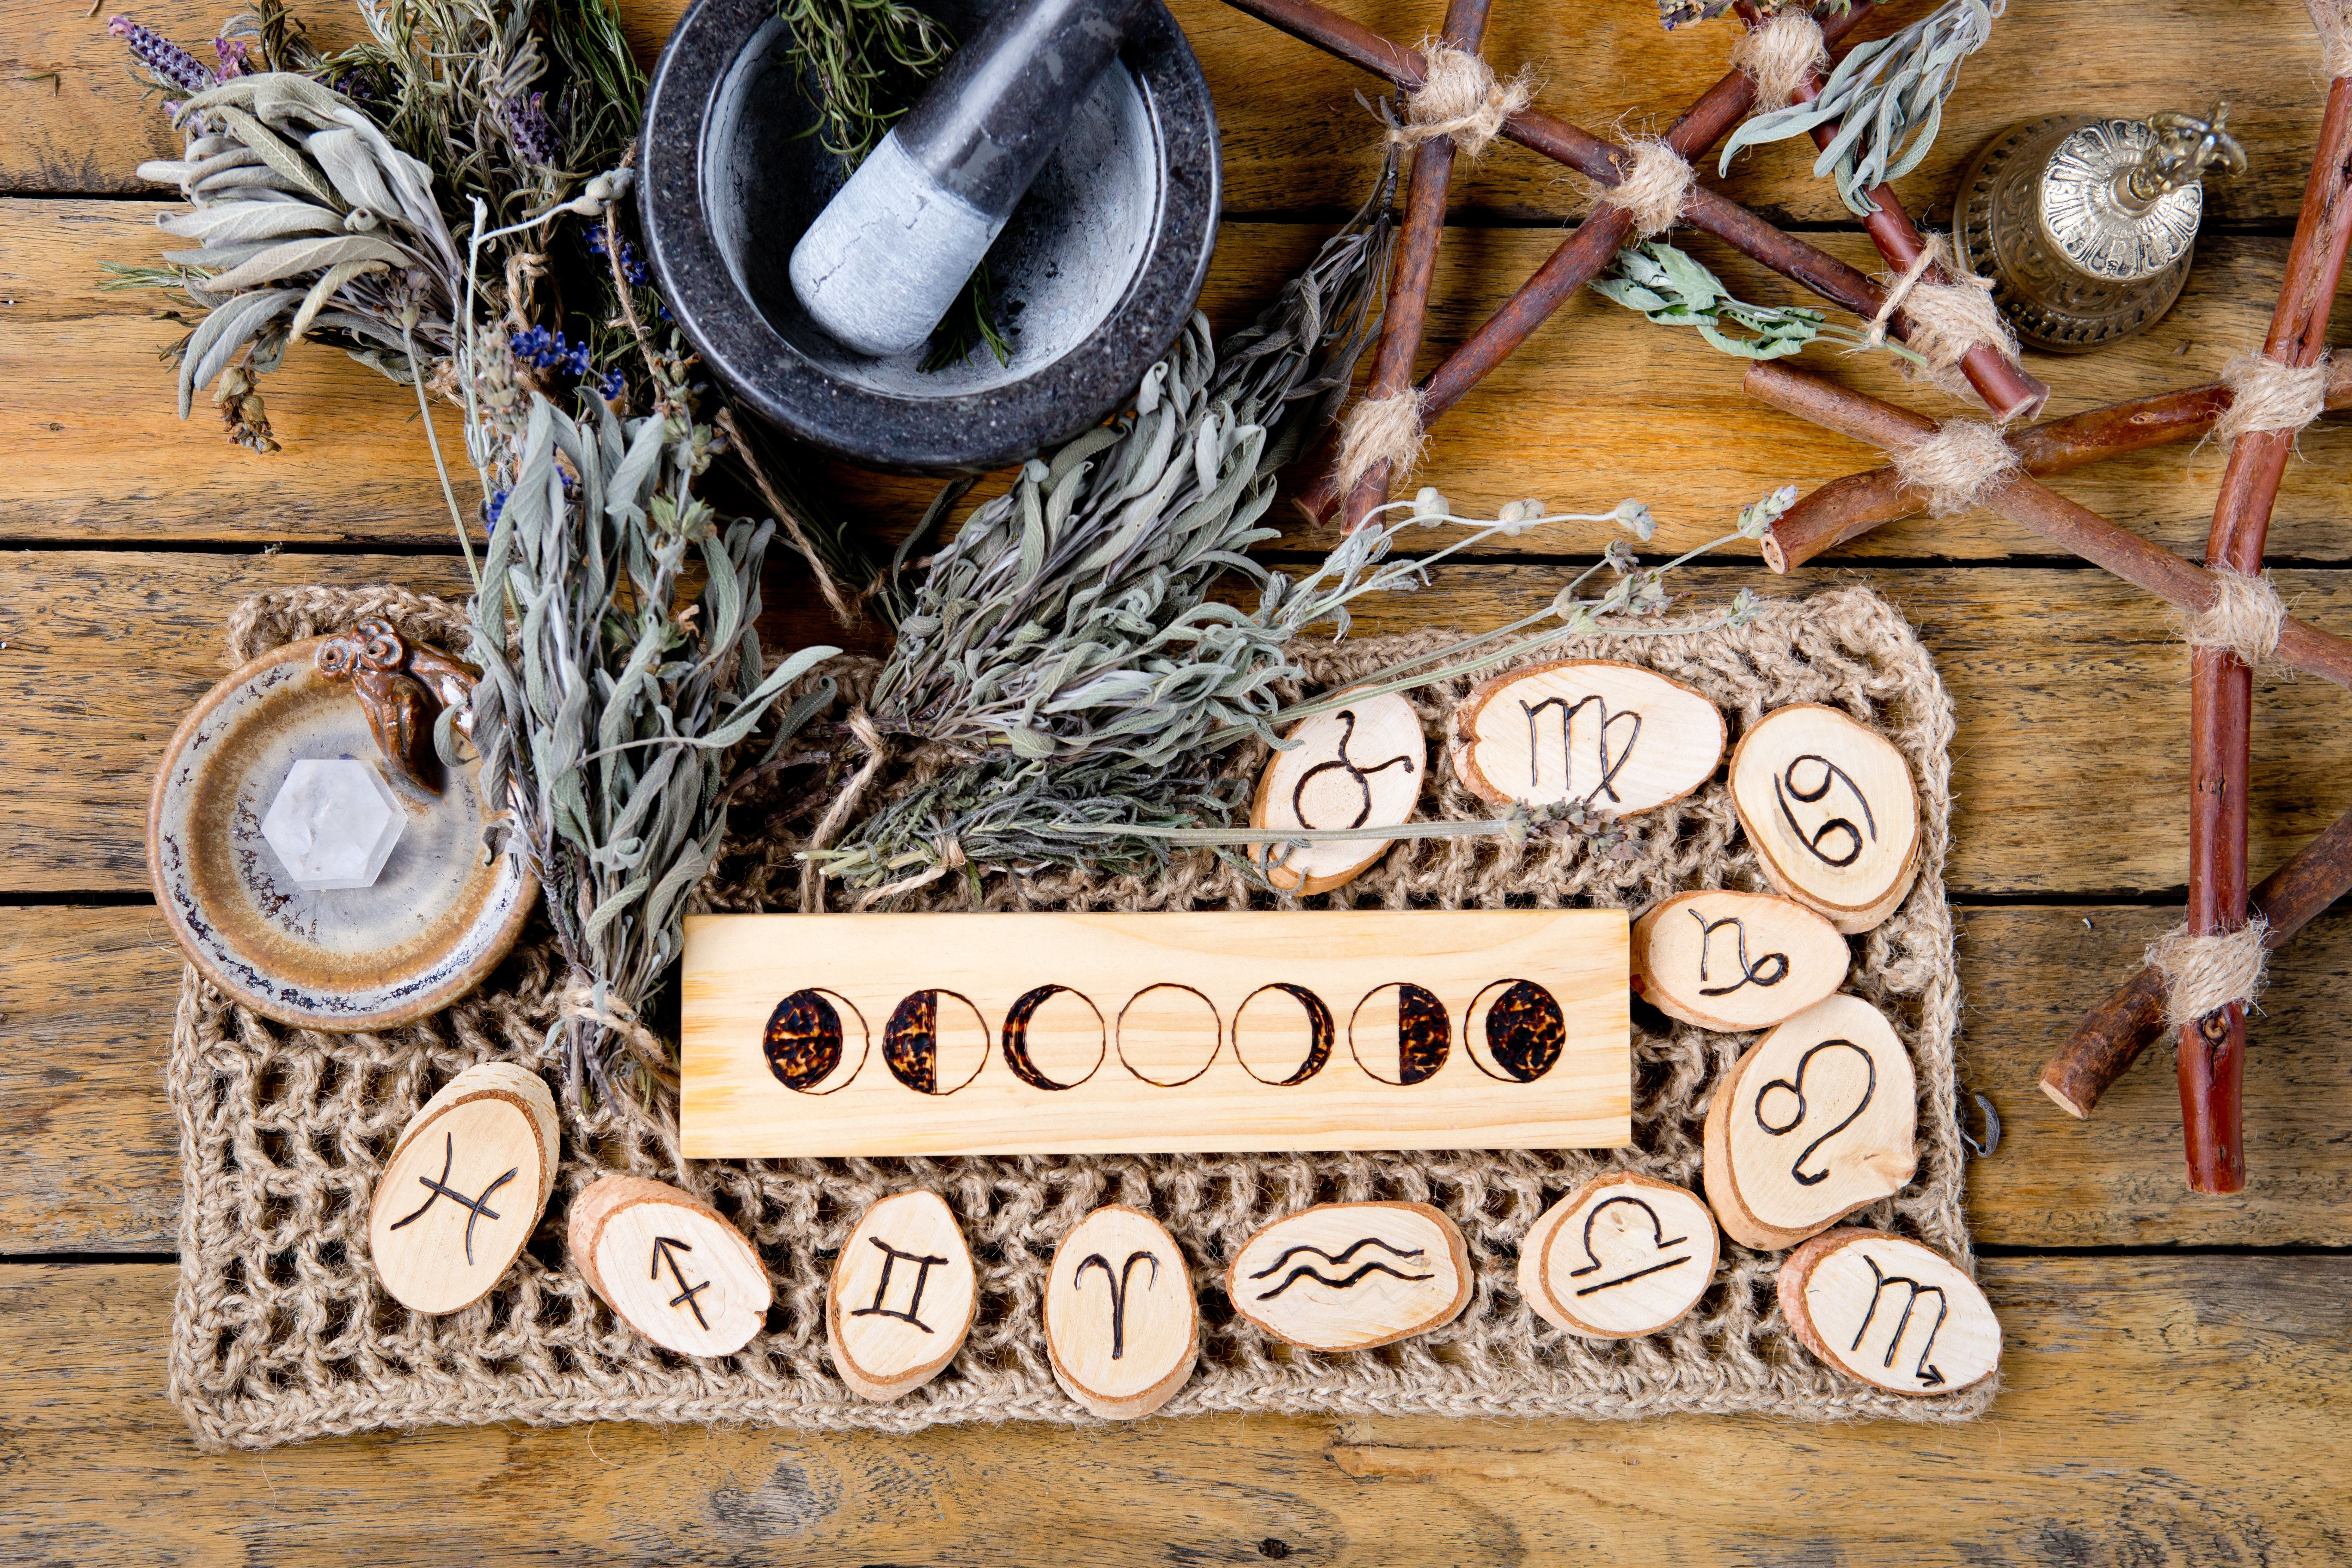 Perfect Zodiac Gifts For Astrology Lovers That Any Sign Will Appreciate